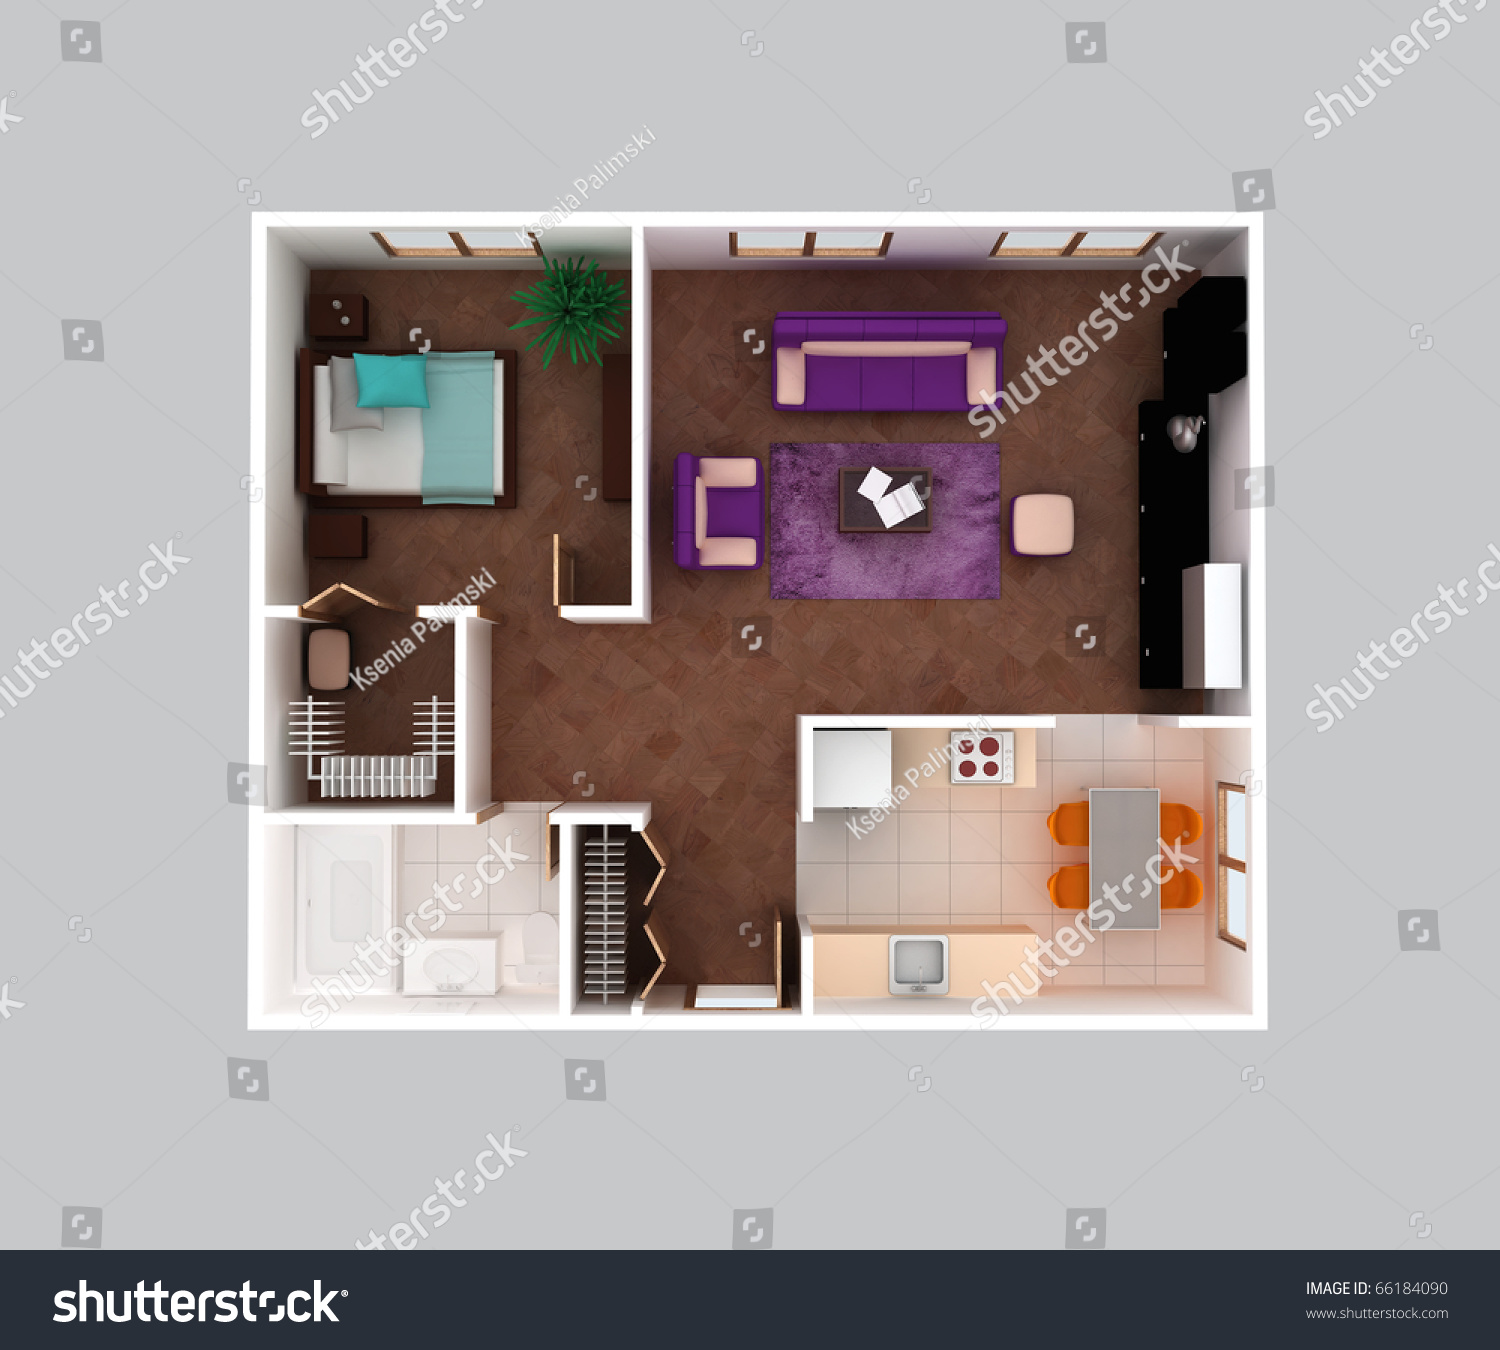 Interior Design Hall And Kitchen: Plan View House Clear 3d Interior Stock Illustration